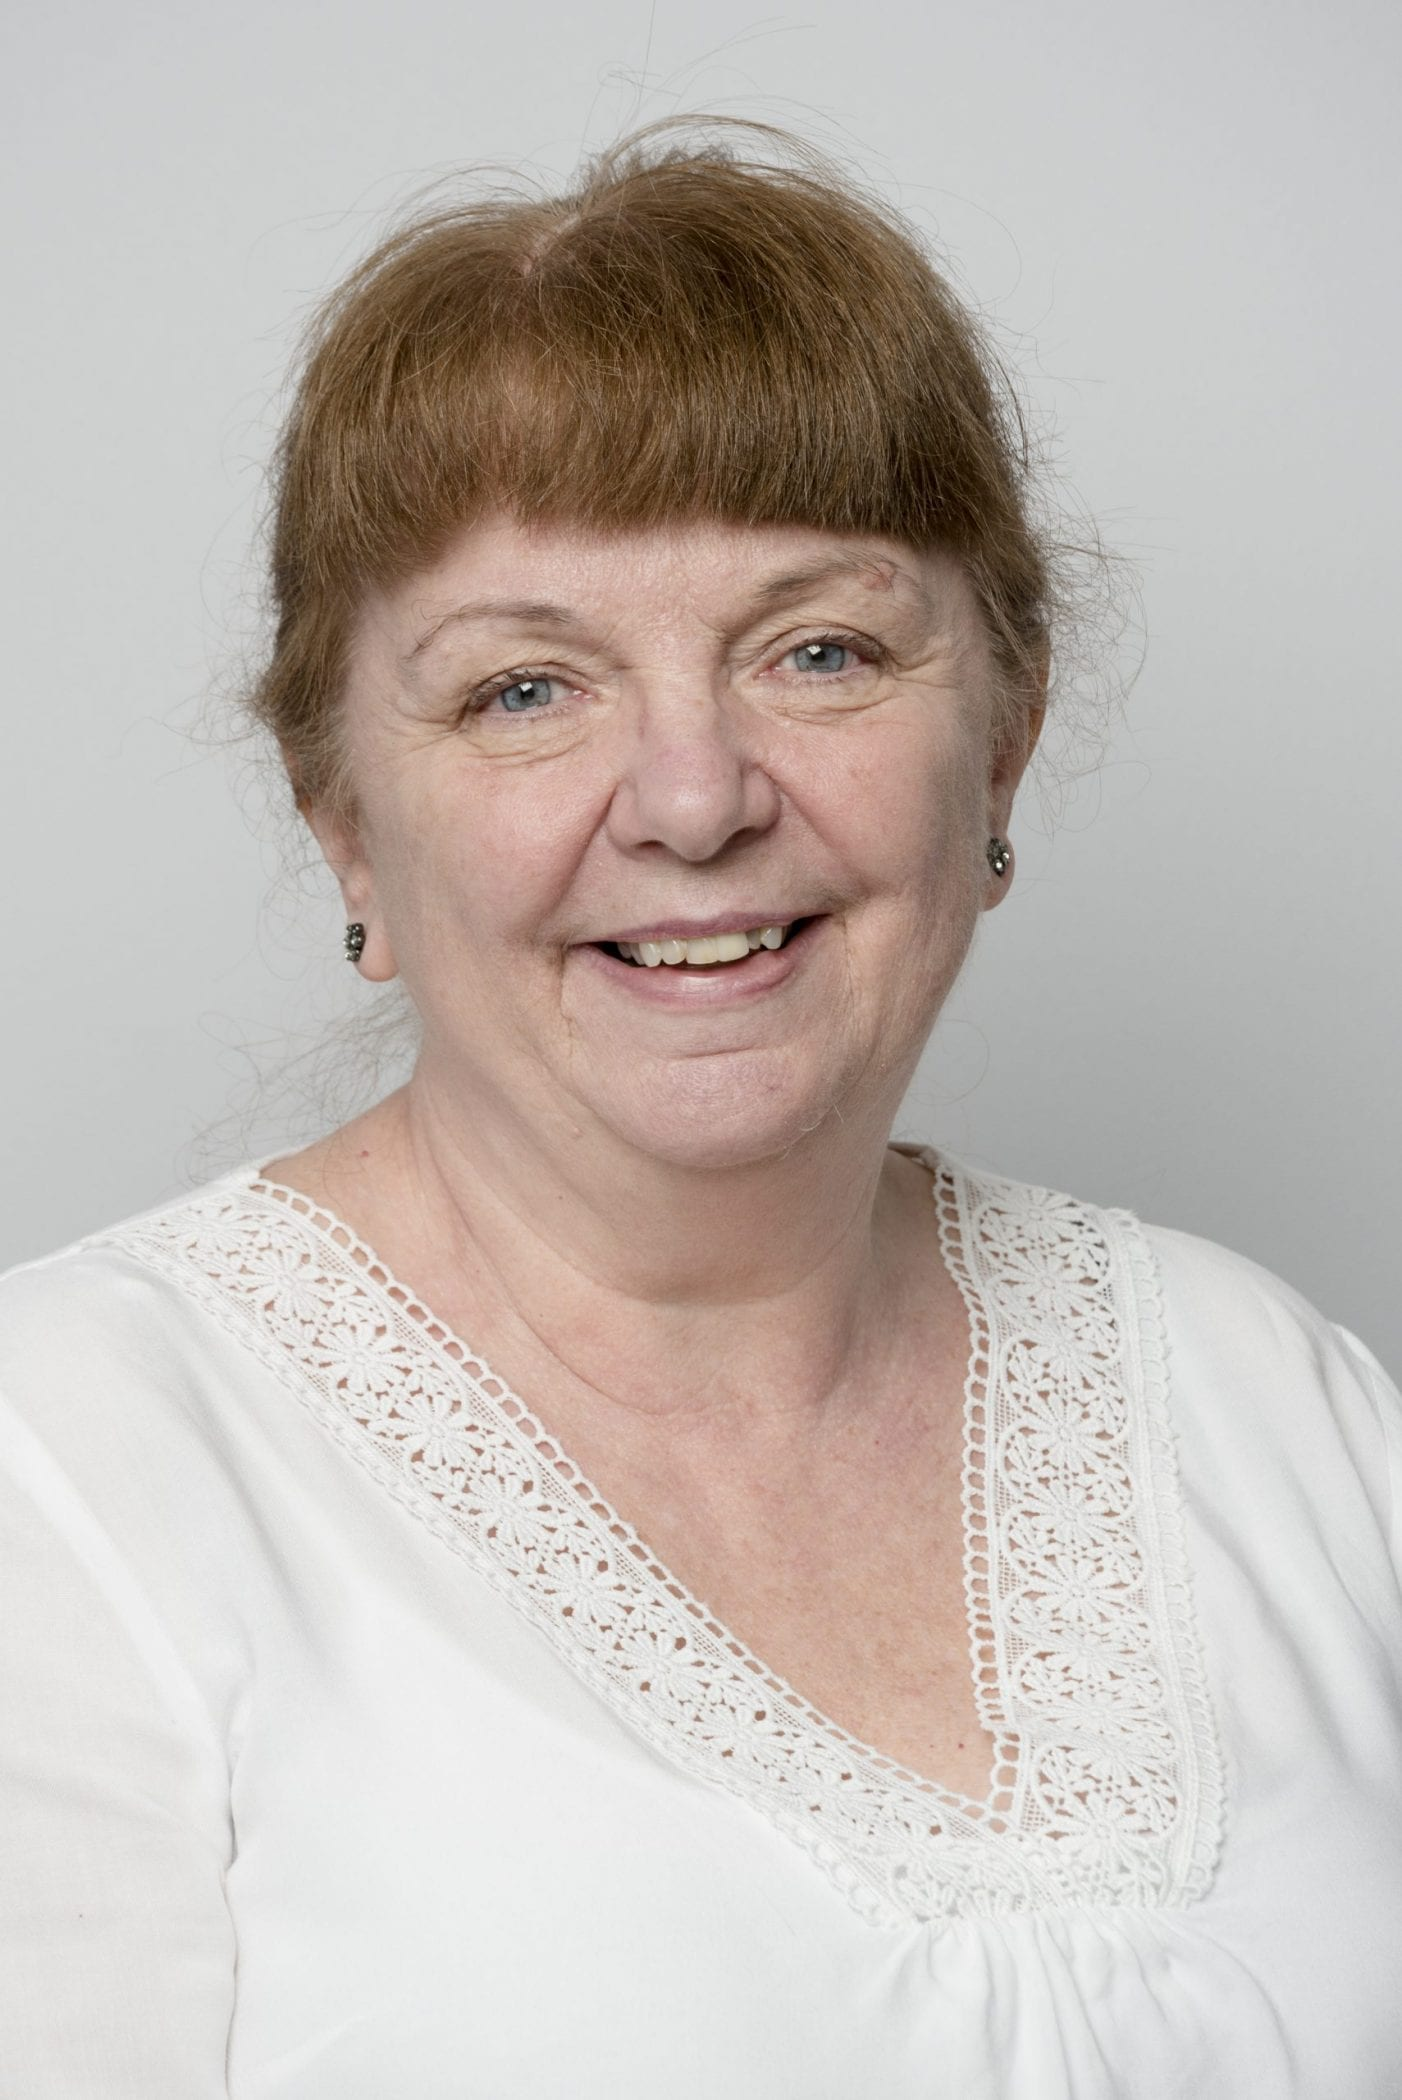 Jeanette Brownlee